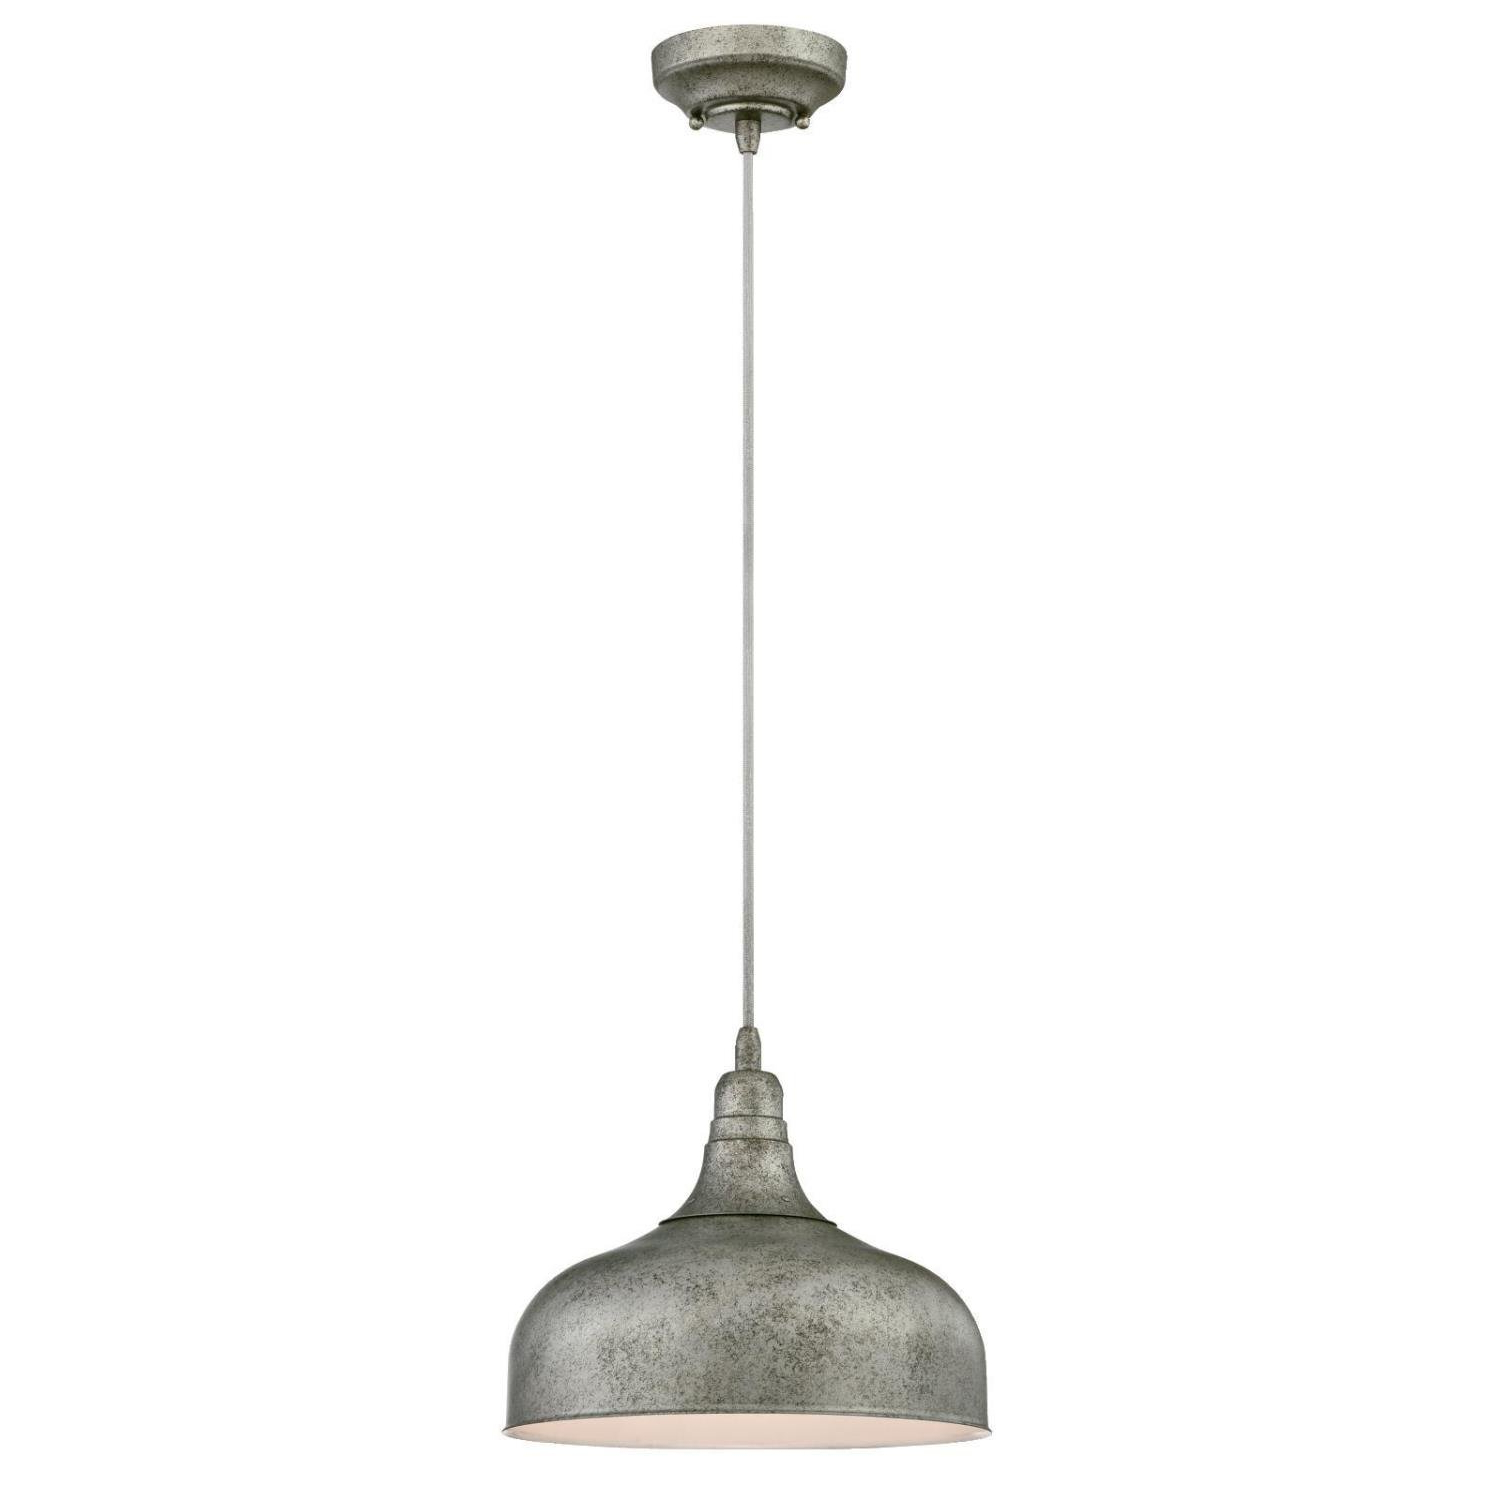 Famous Gracie Oaks Burwan 1 Light Dome Pendant Within Amara 3 Light Dome Pendants (View 11 of 25)